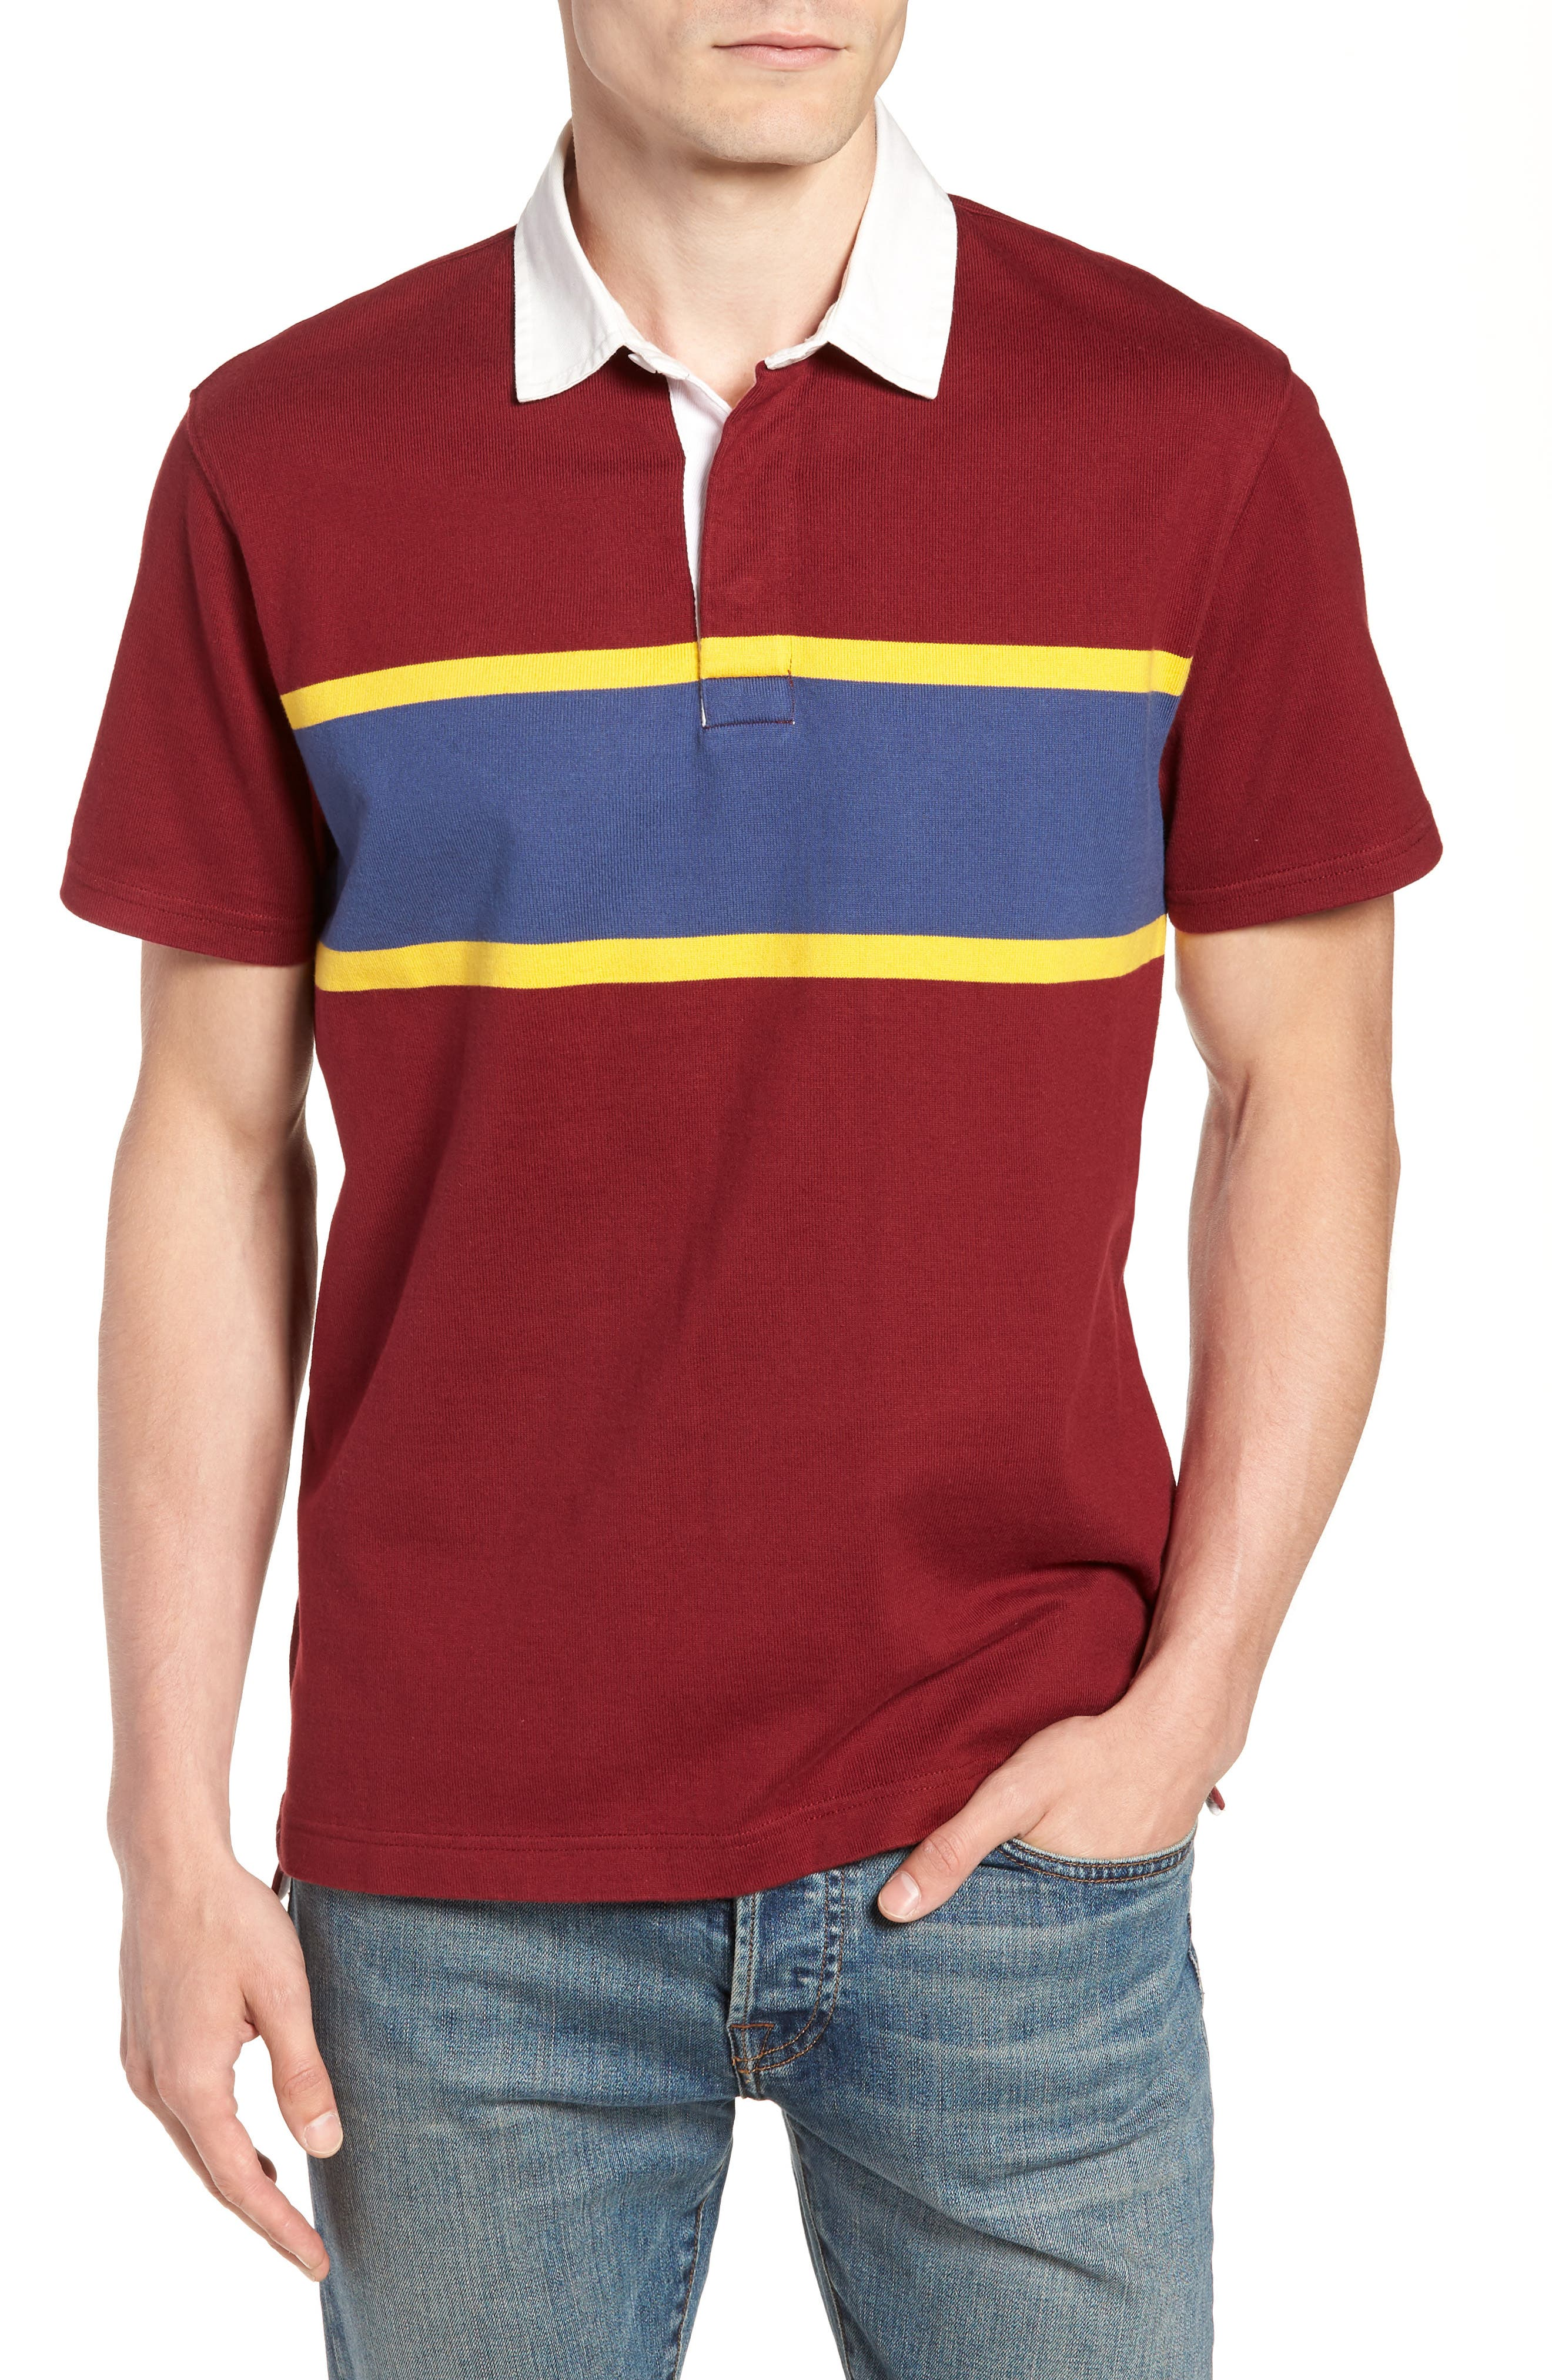 1984 Rugby Shirt,                         Main,                         color, 930